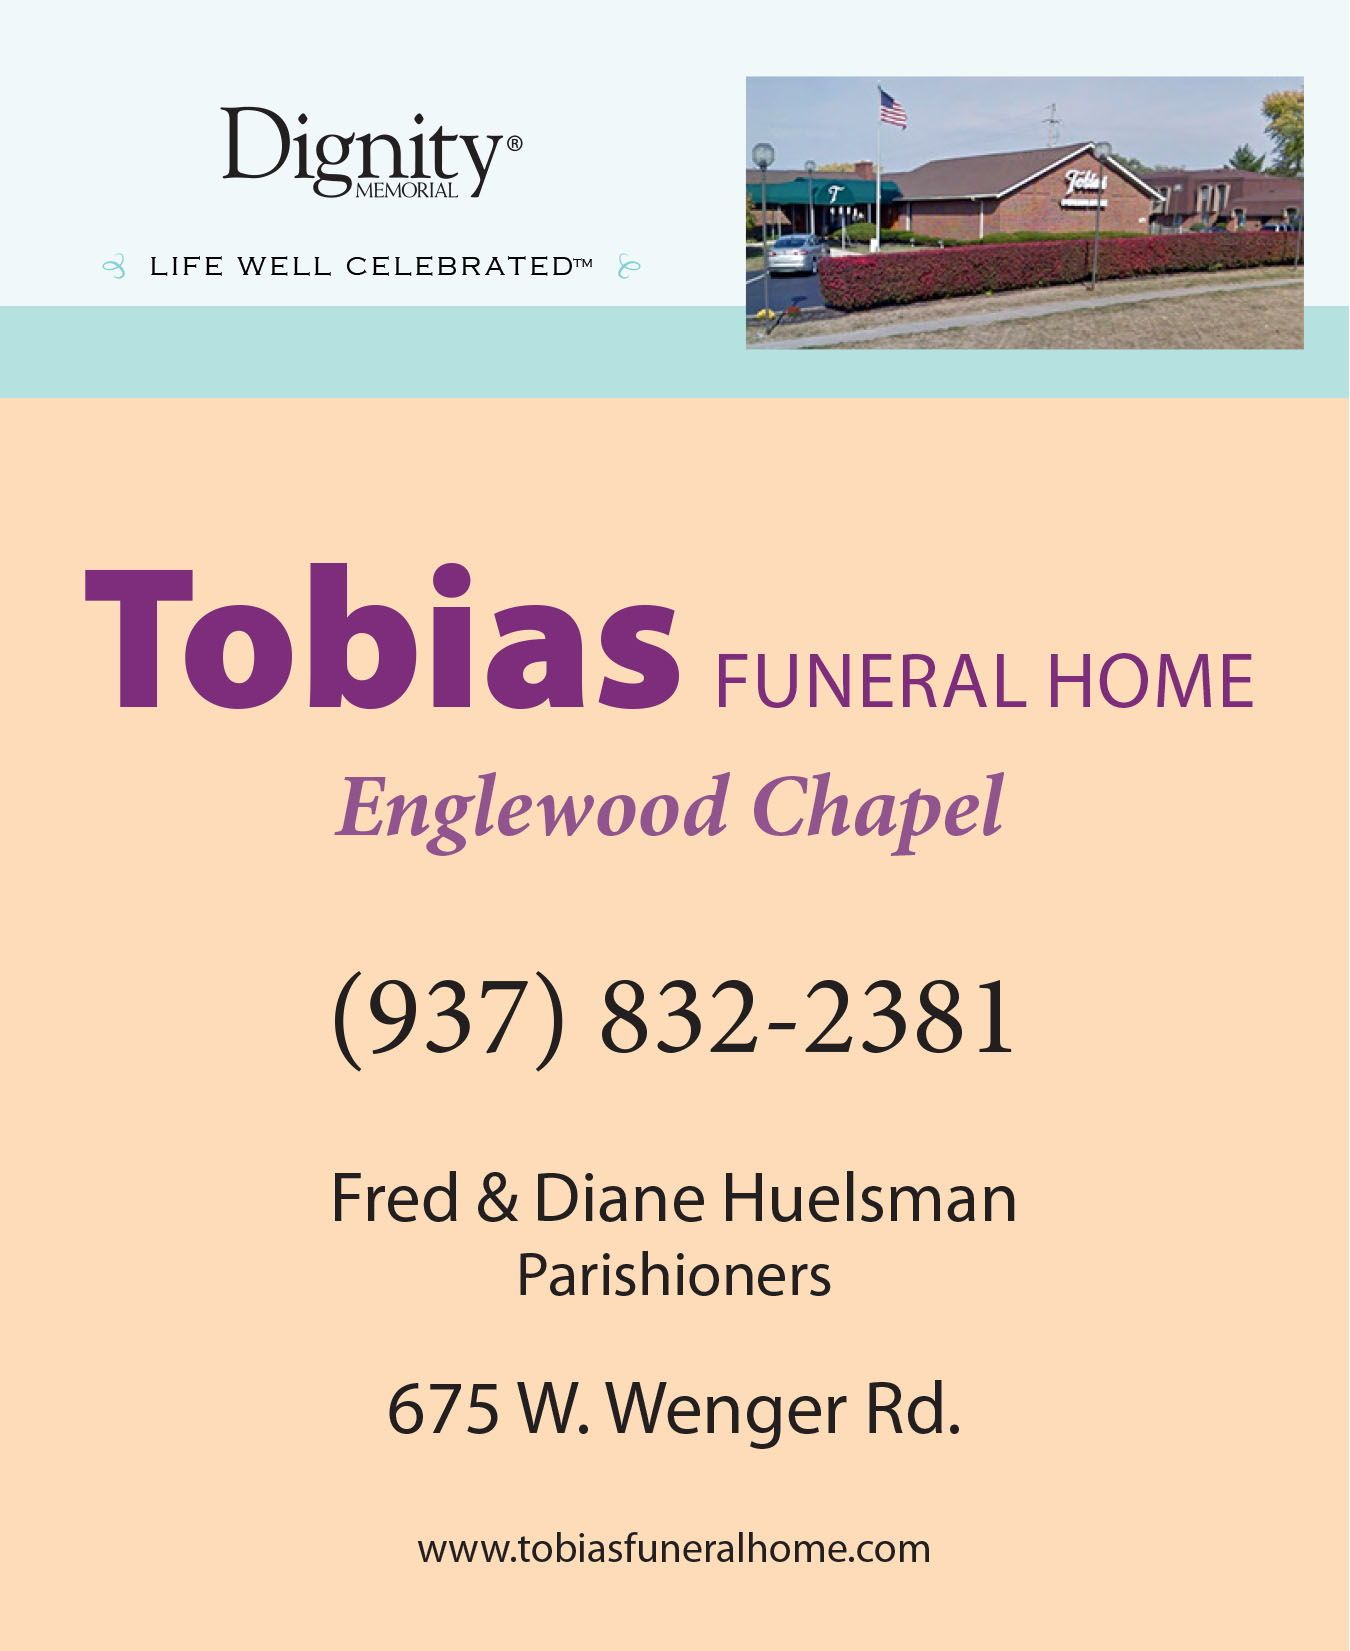 funeral homes in dayton ohio area